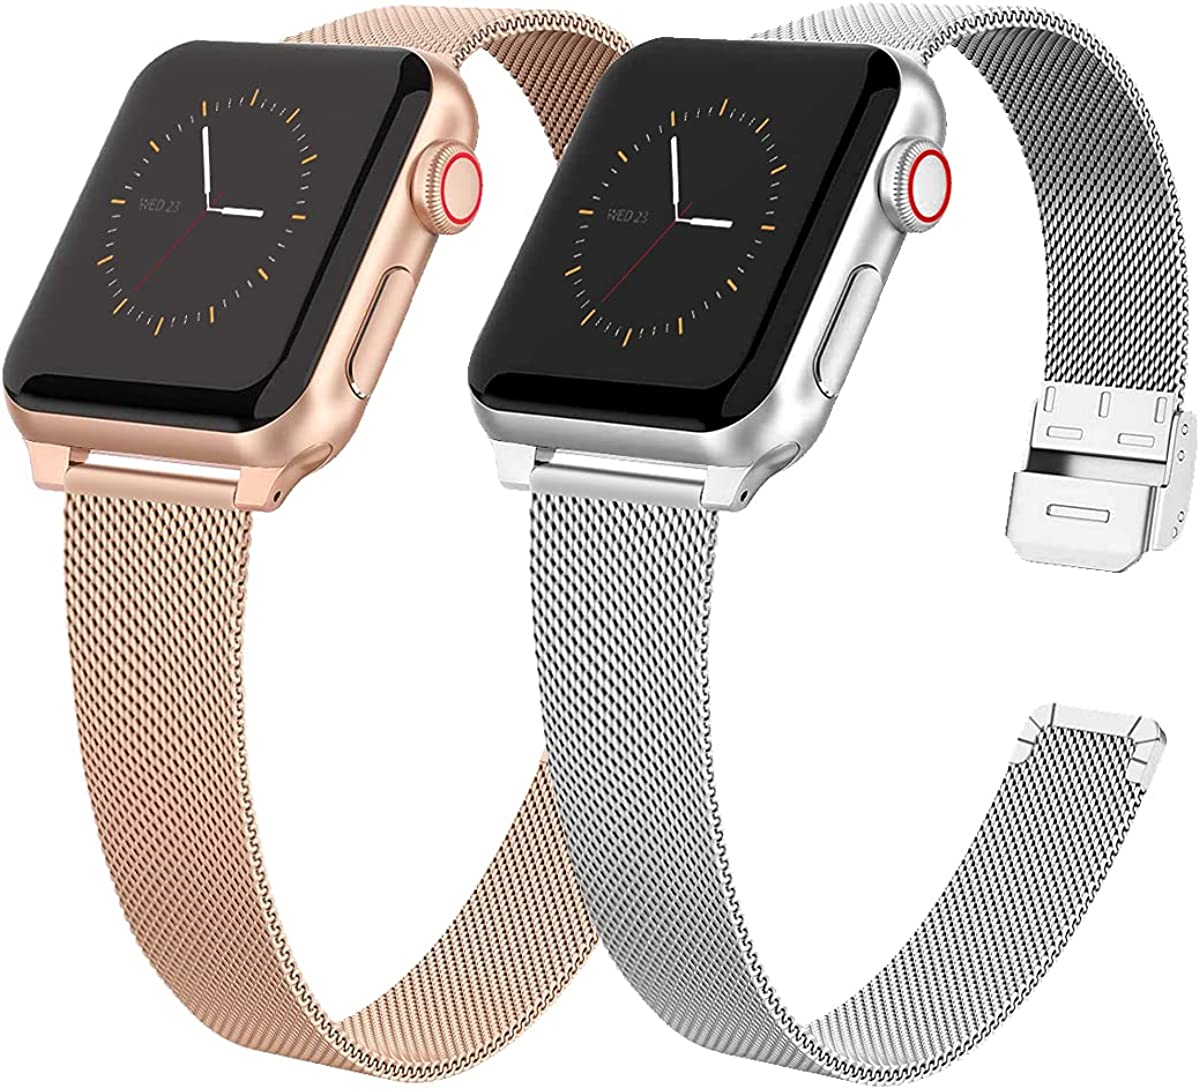 2 Pack Slim Metal Watch Band Compatible with Apple Watch Band 38mm 40mm 42mm 44mm for Women Girls, Stainless Steel Mesh Strap Replacement for iWatch SE iwatch Series 6/5/4/3/2/1